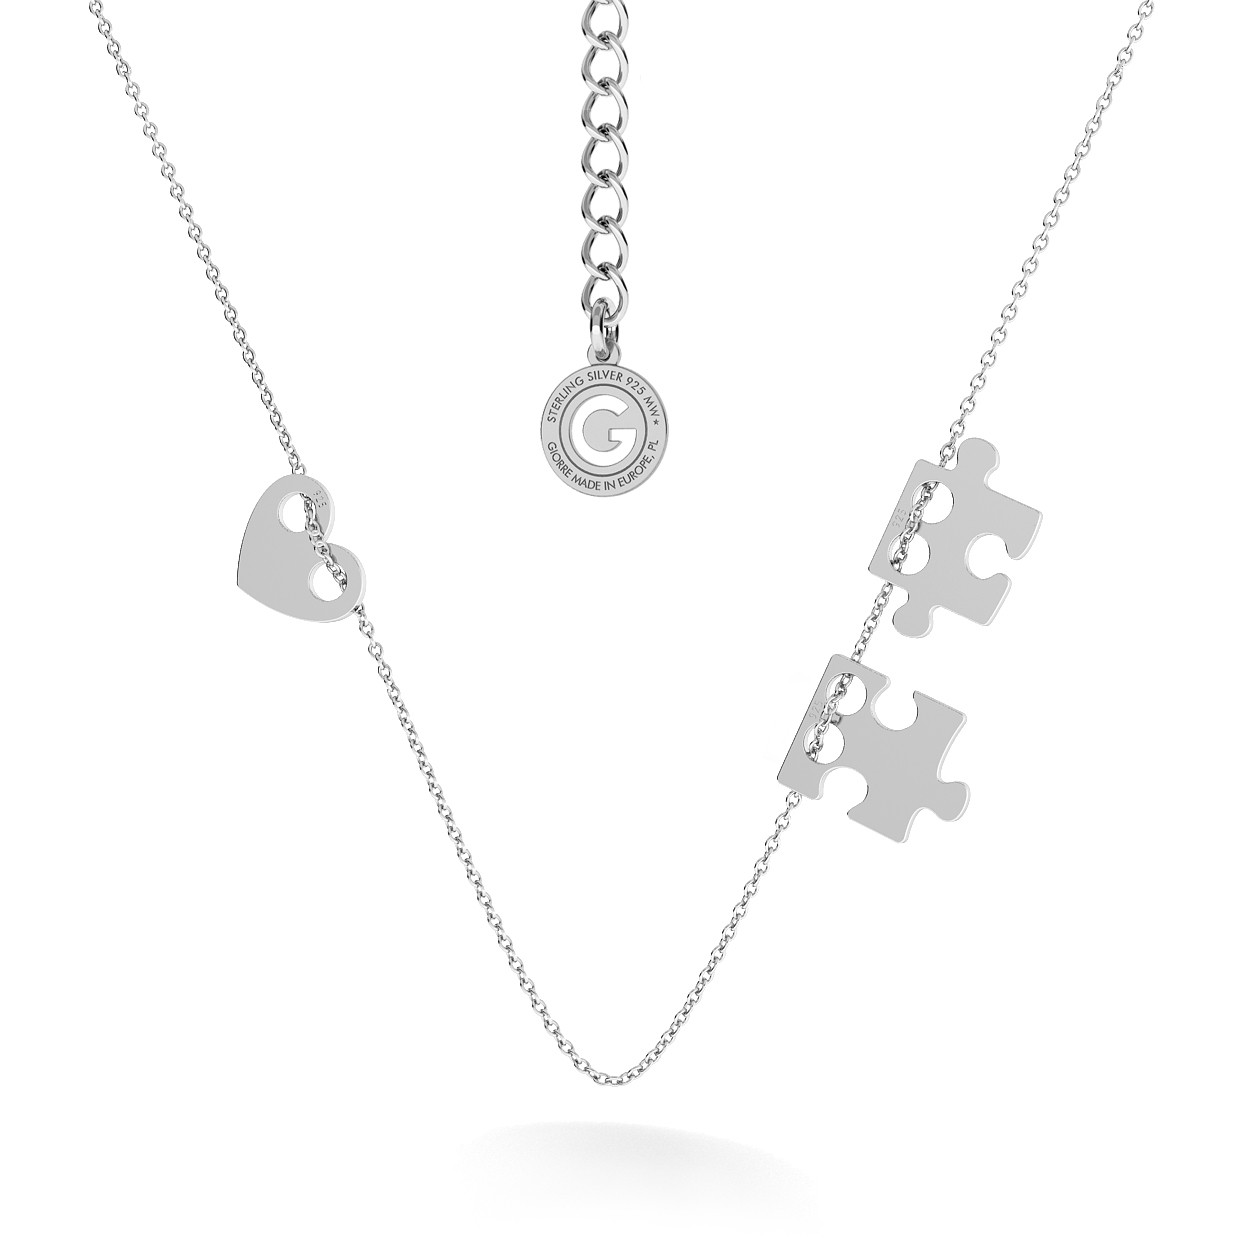 Necklace CAFFEINE chemical formula